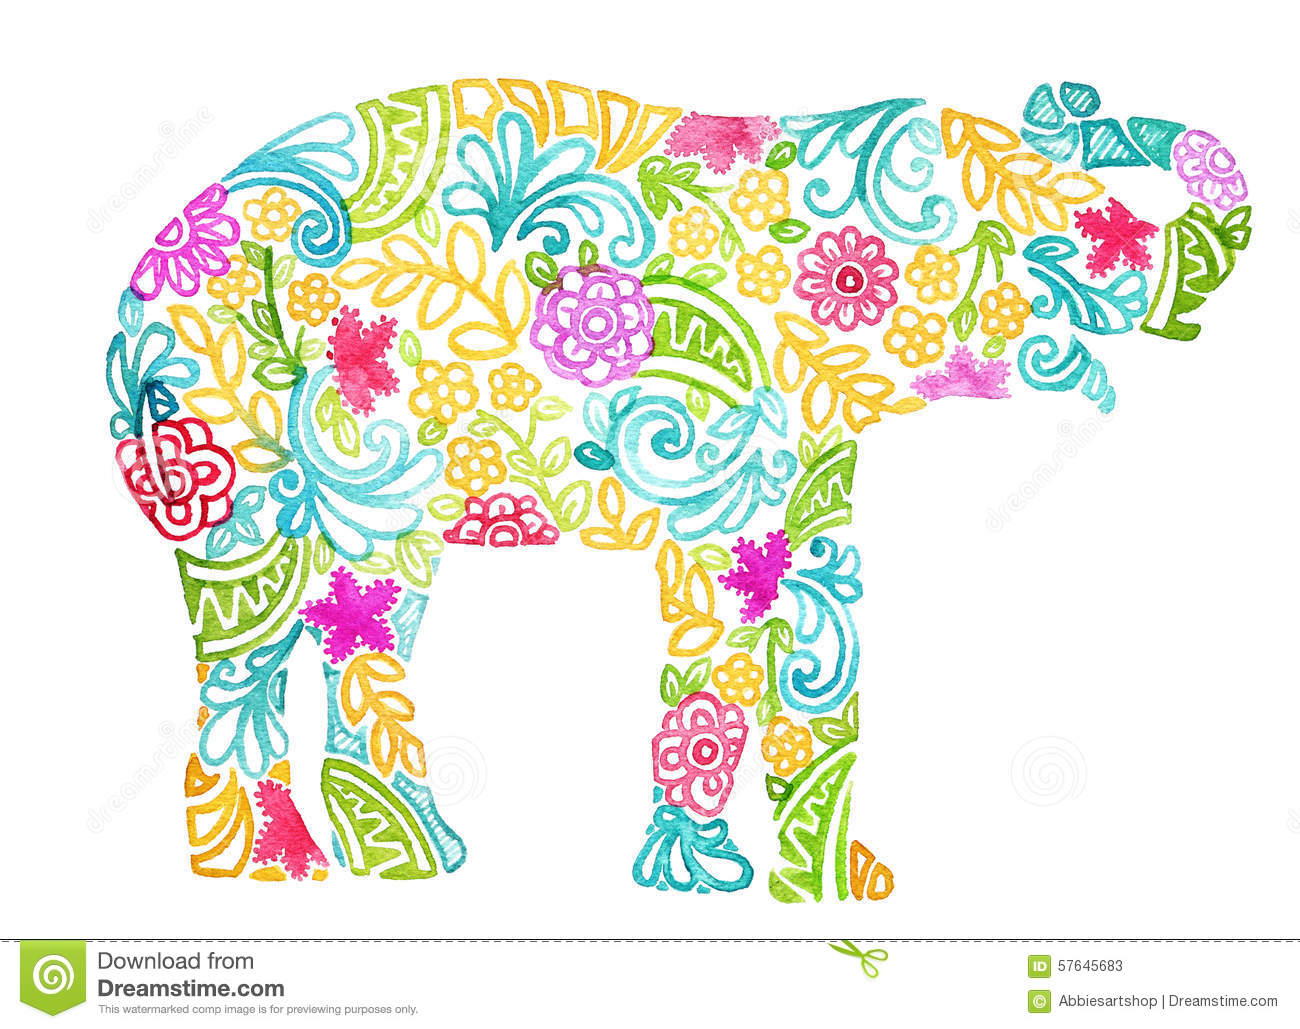 Abstract Watercolor Painted Elephant Design On White Background.